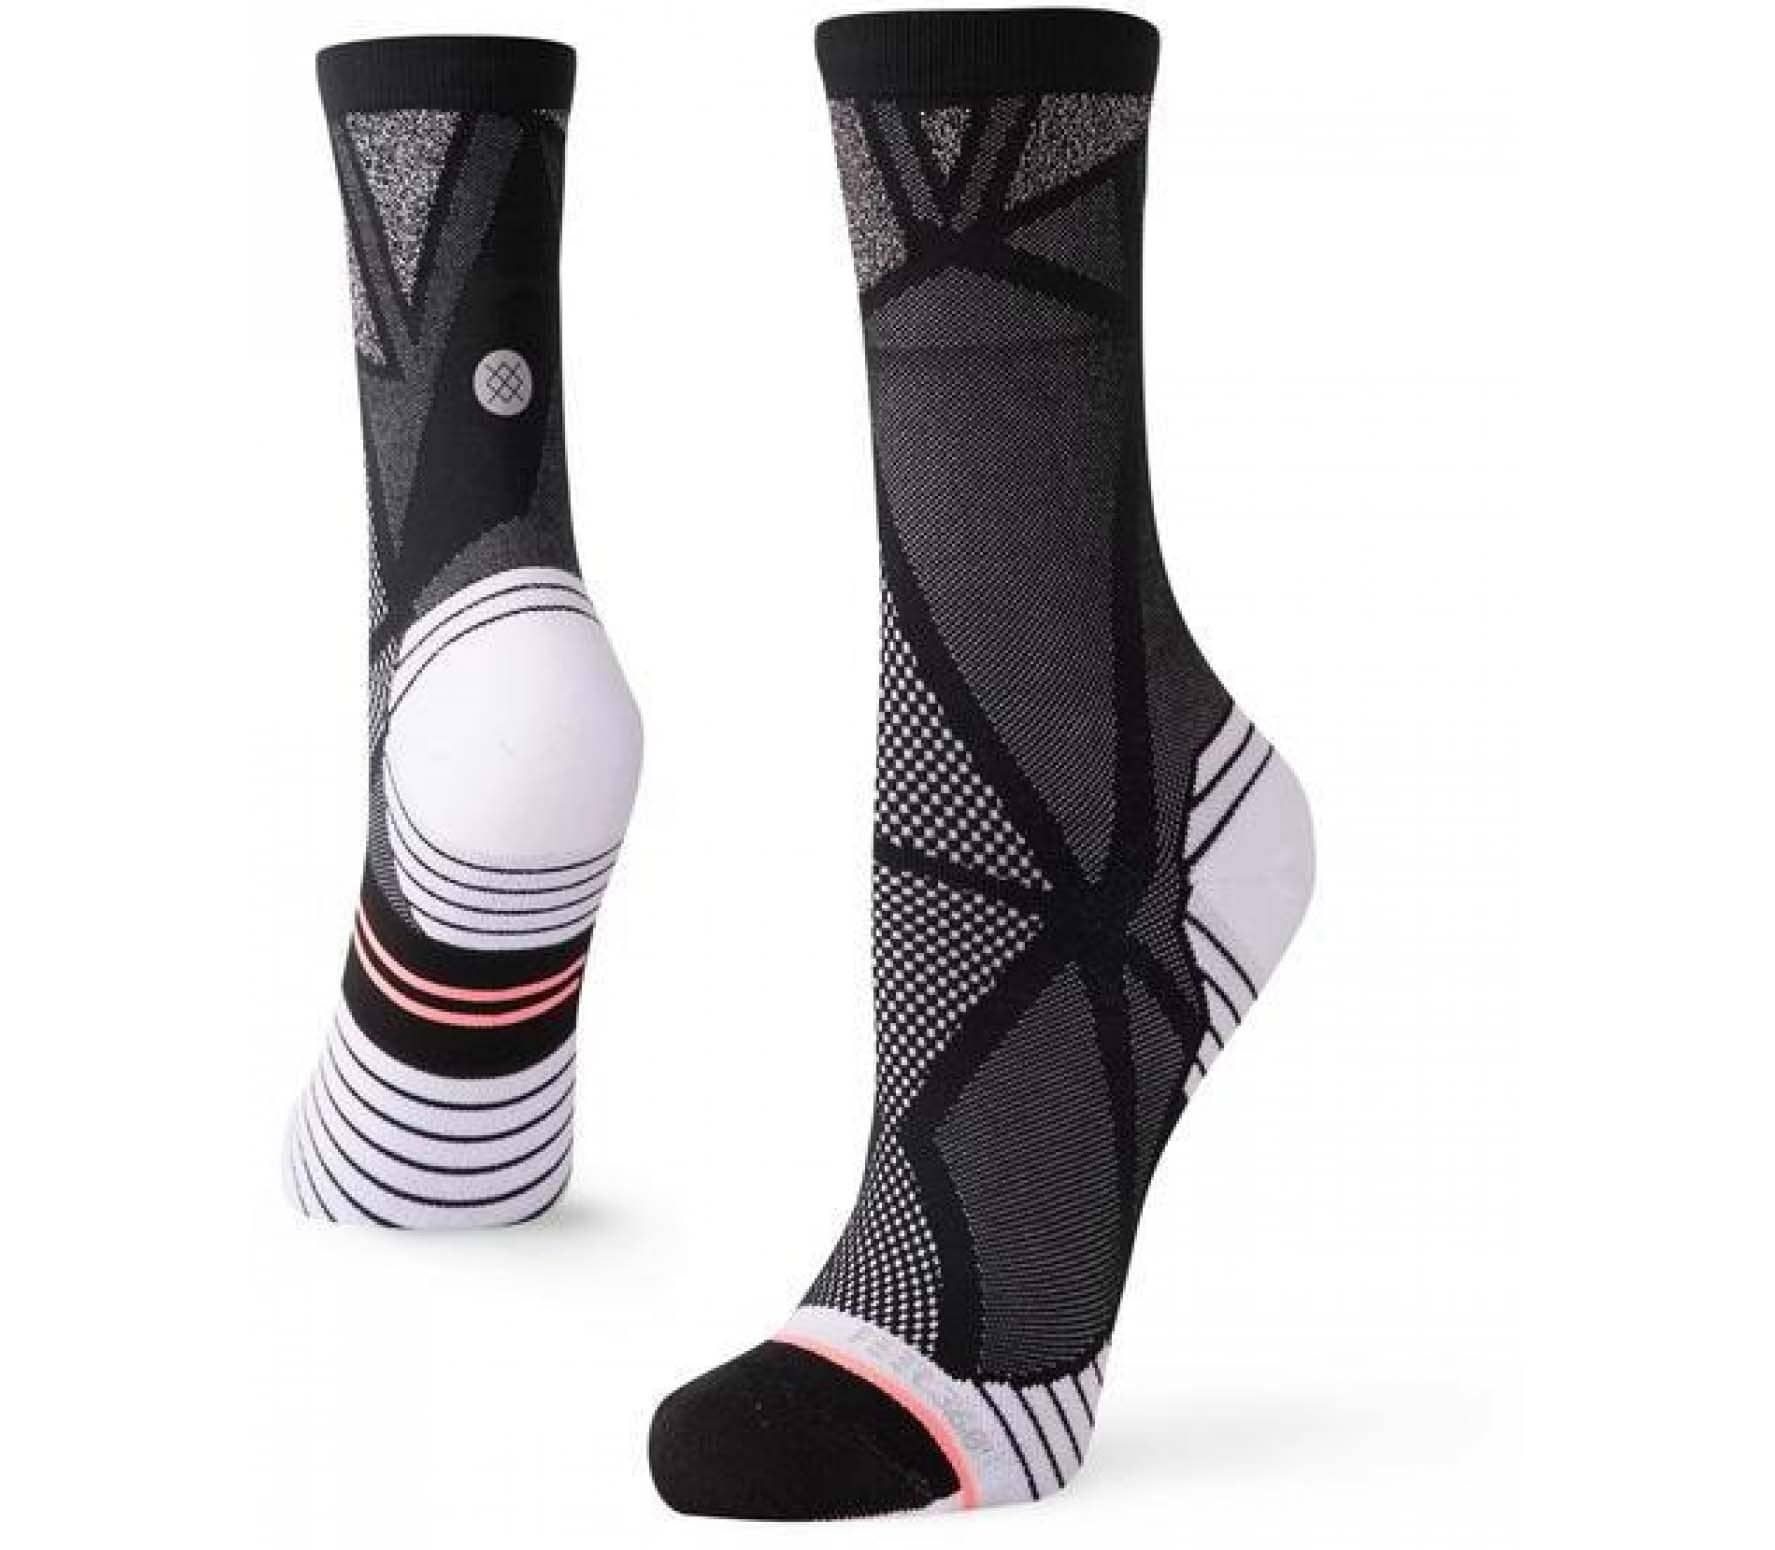 womens sports socks and performance socks by stance - HD1775×1550